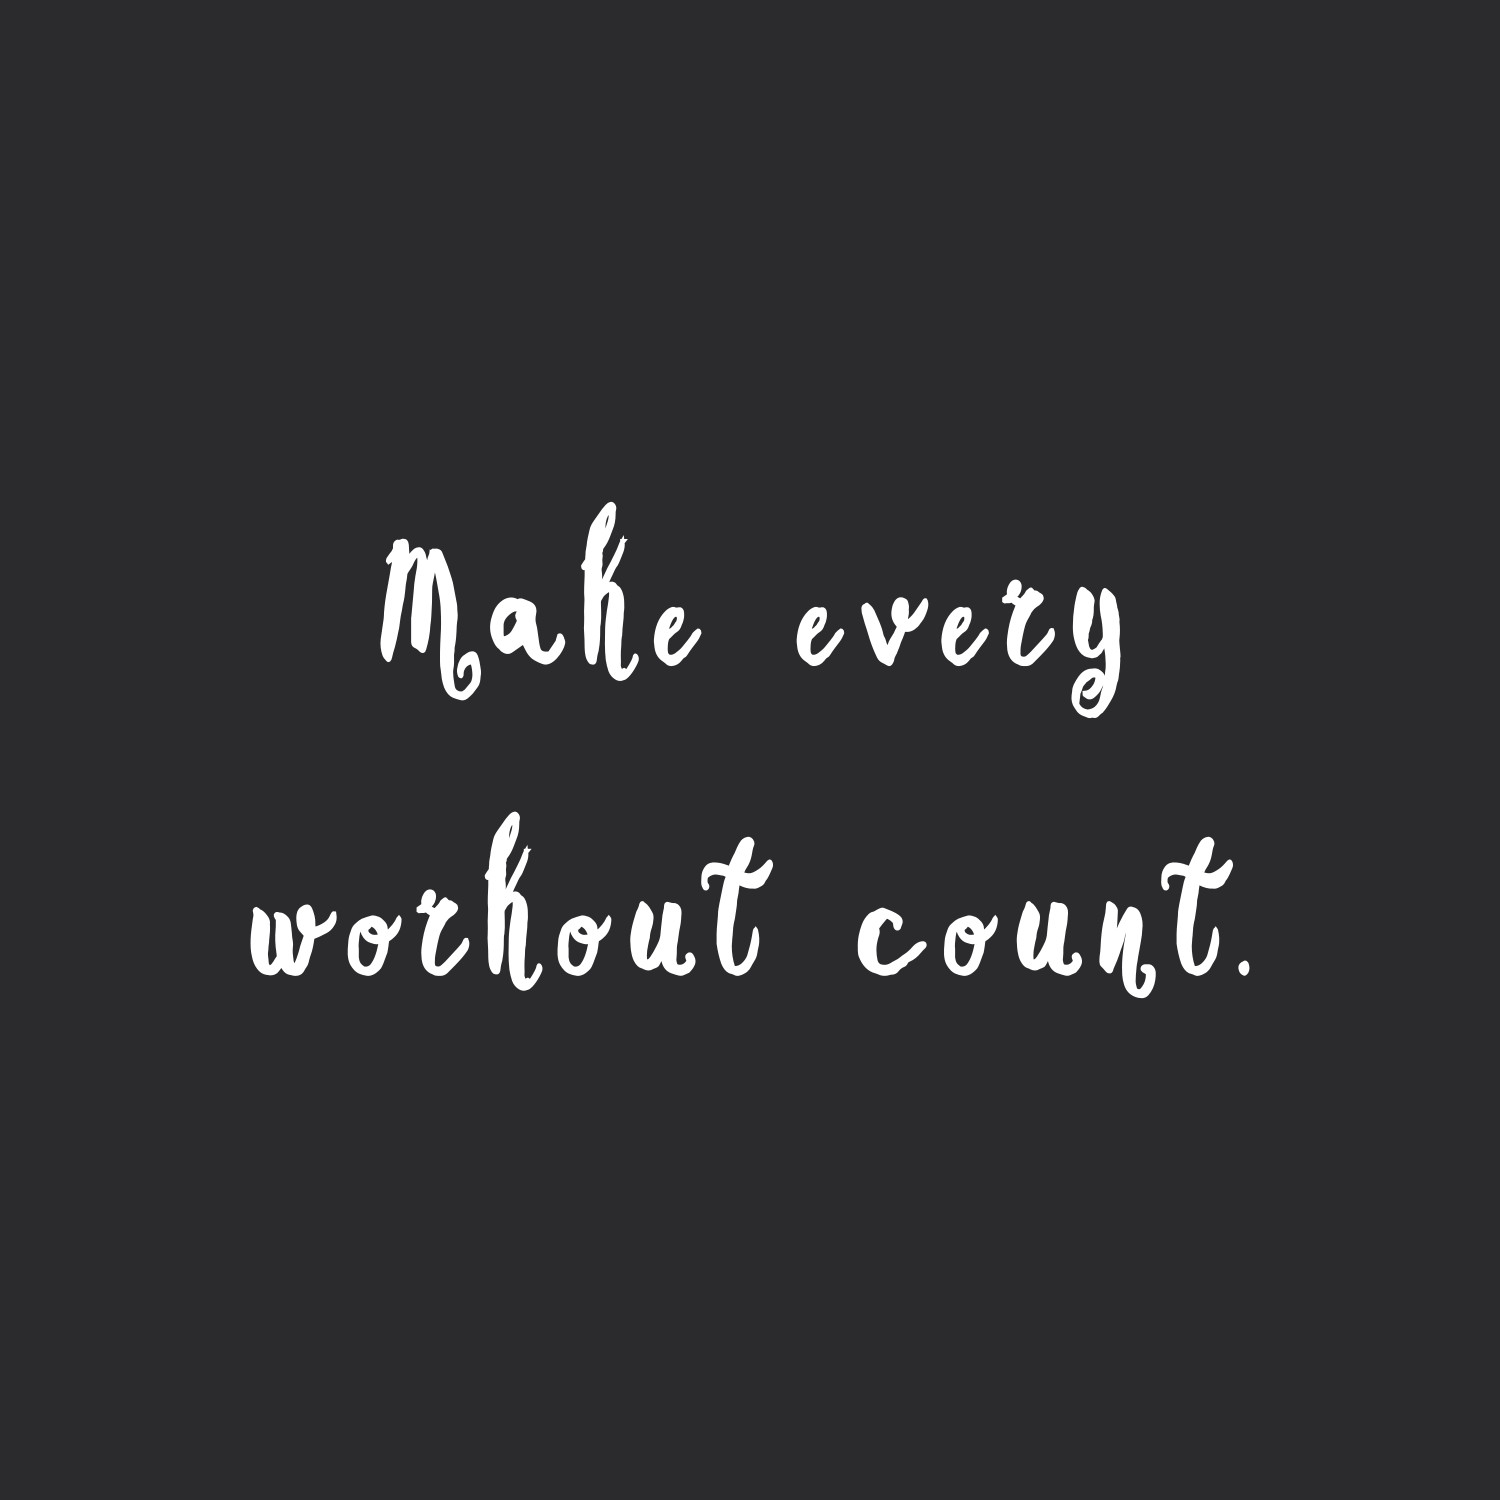 Weight Quotes Make Every Workout Count  Training Inspiration Quote